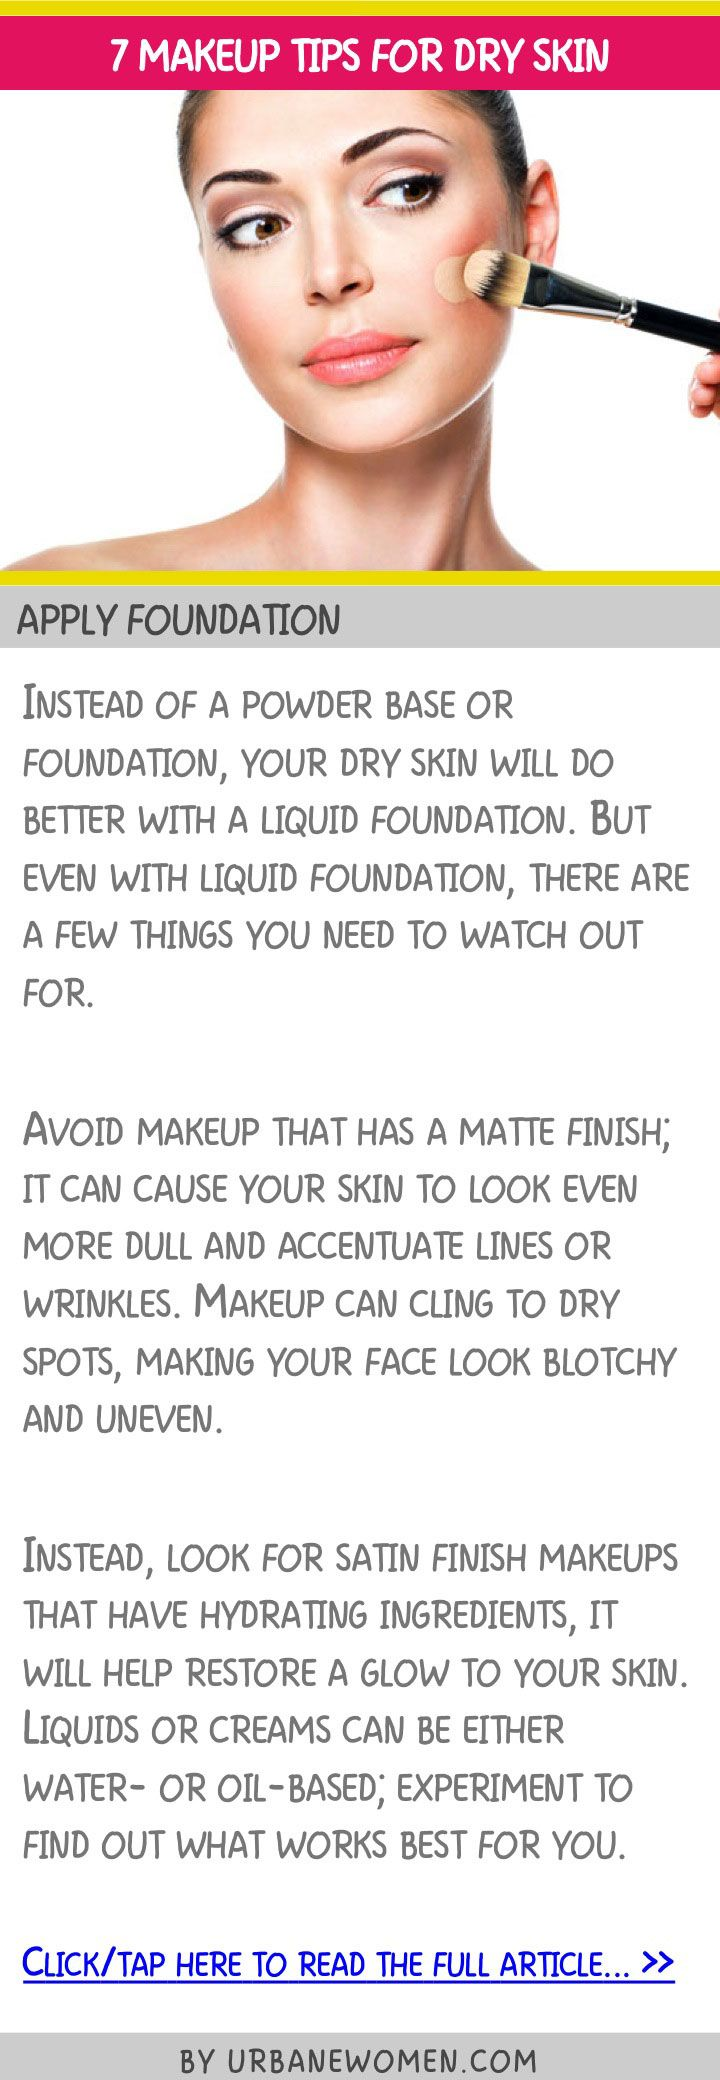 7 Makeup Tips For Dry Skin